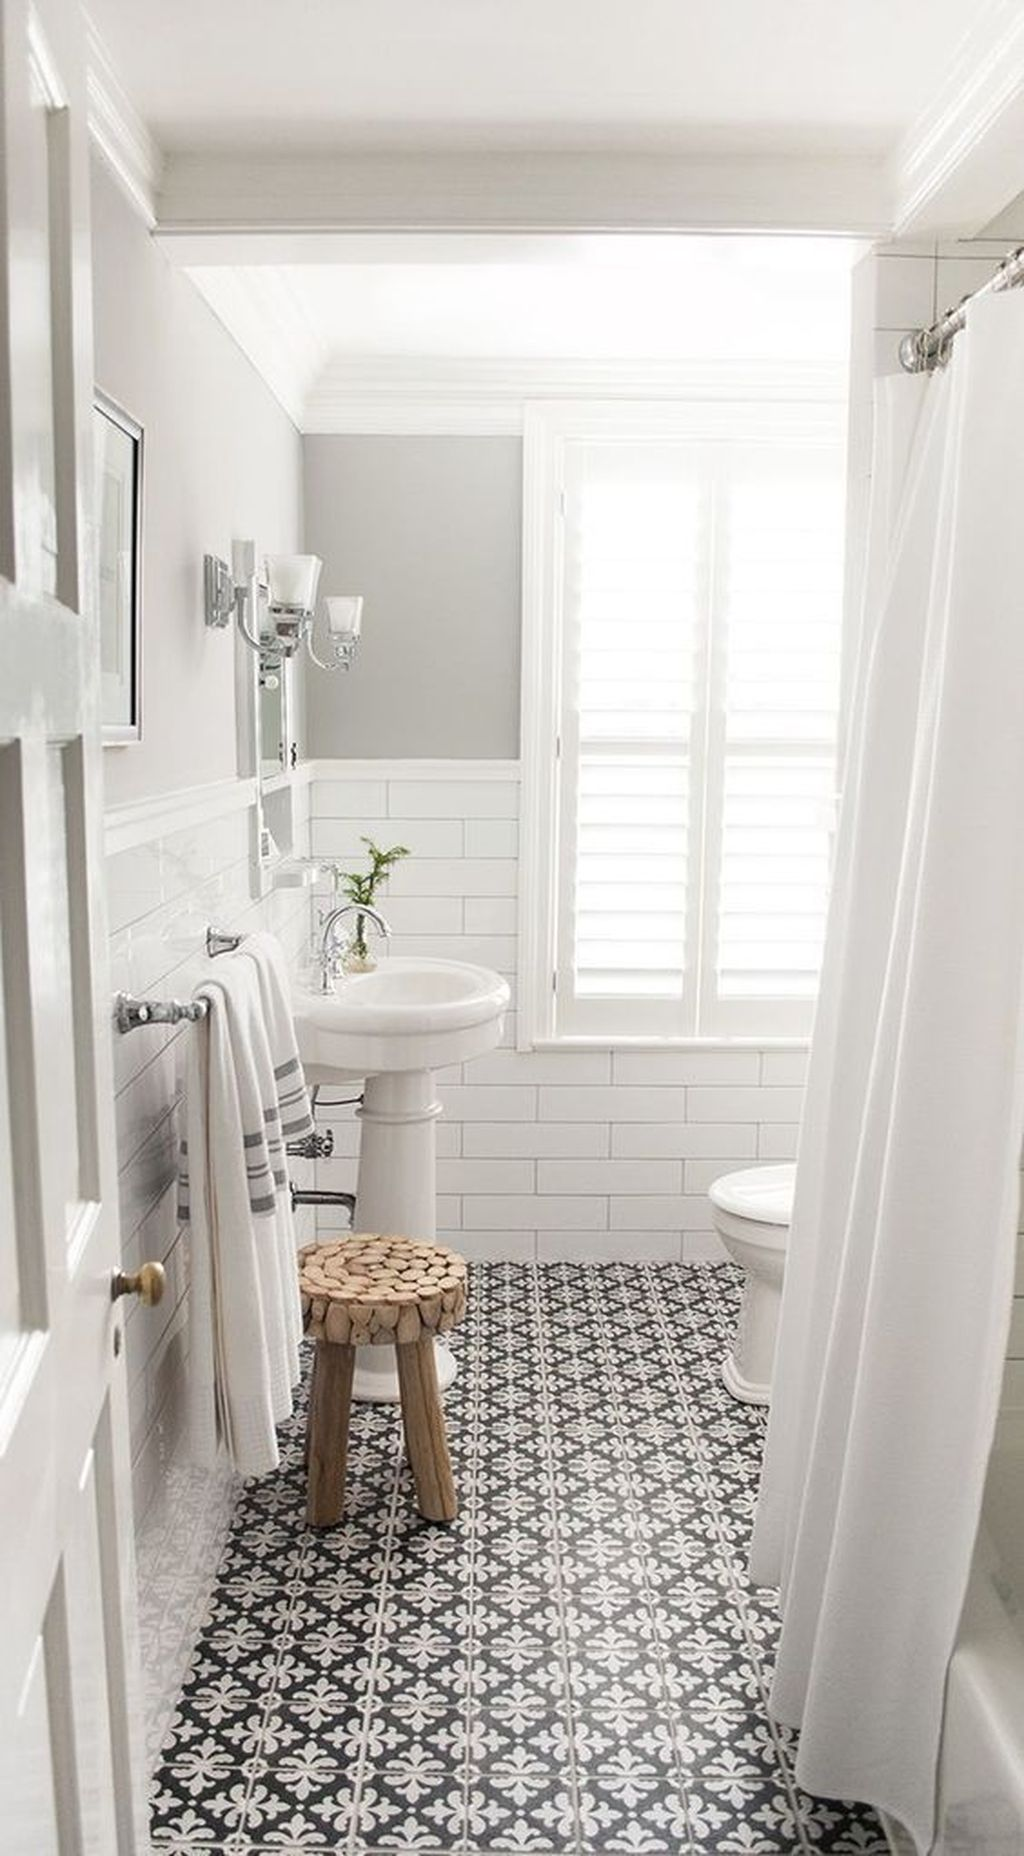 Amazing White Tile Bathroom Design Ideas Looks Elegant 39